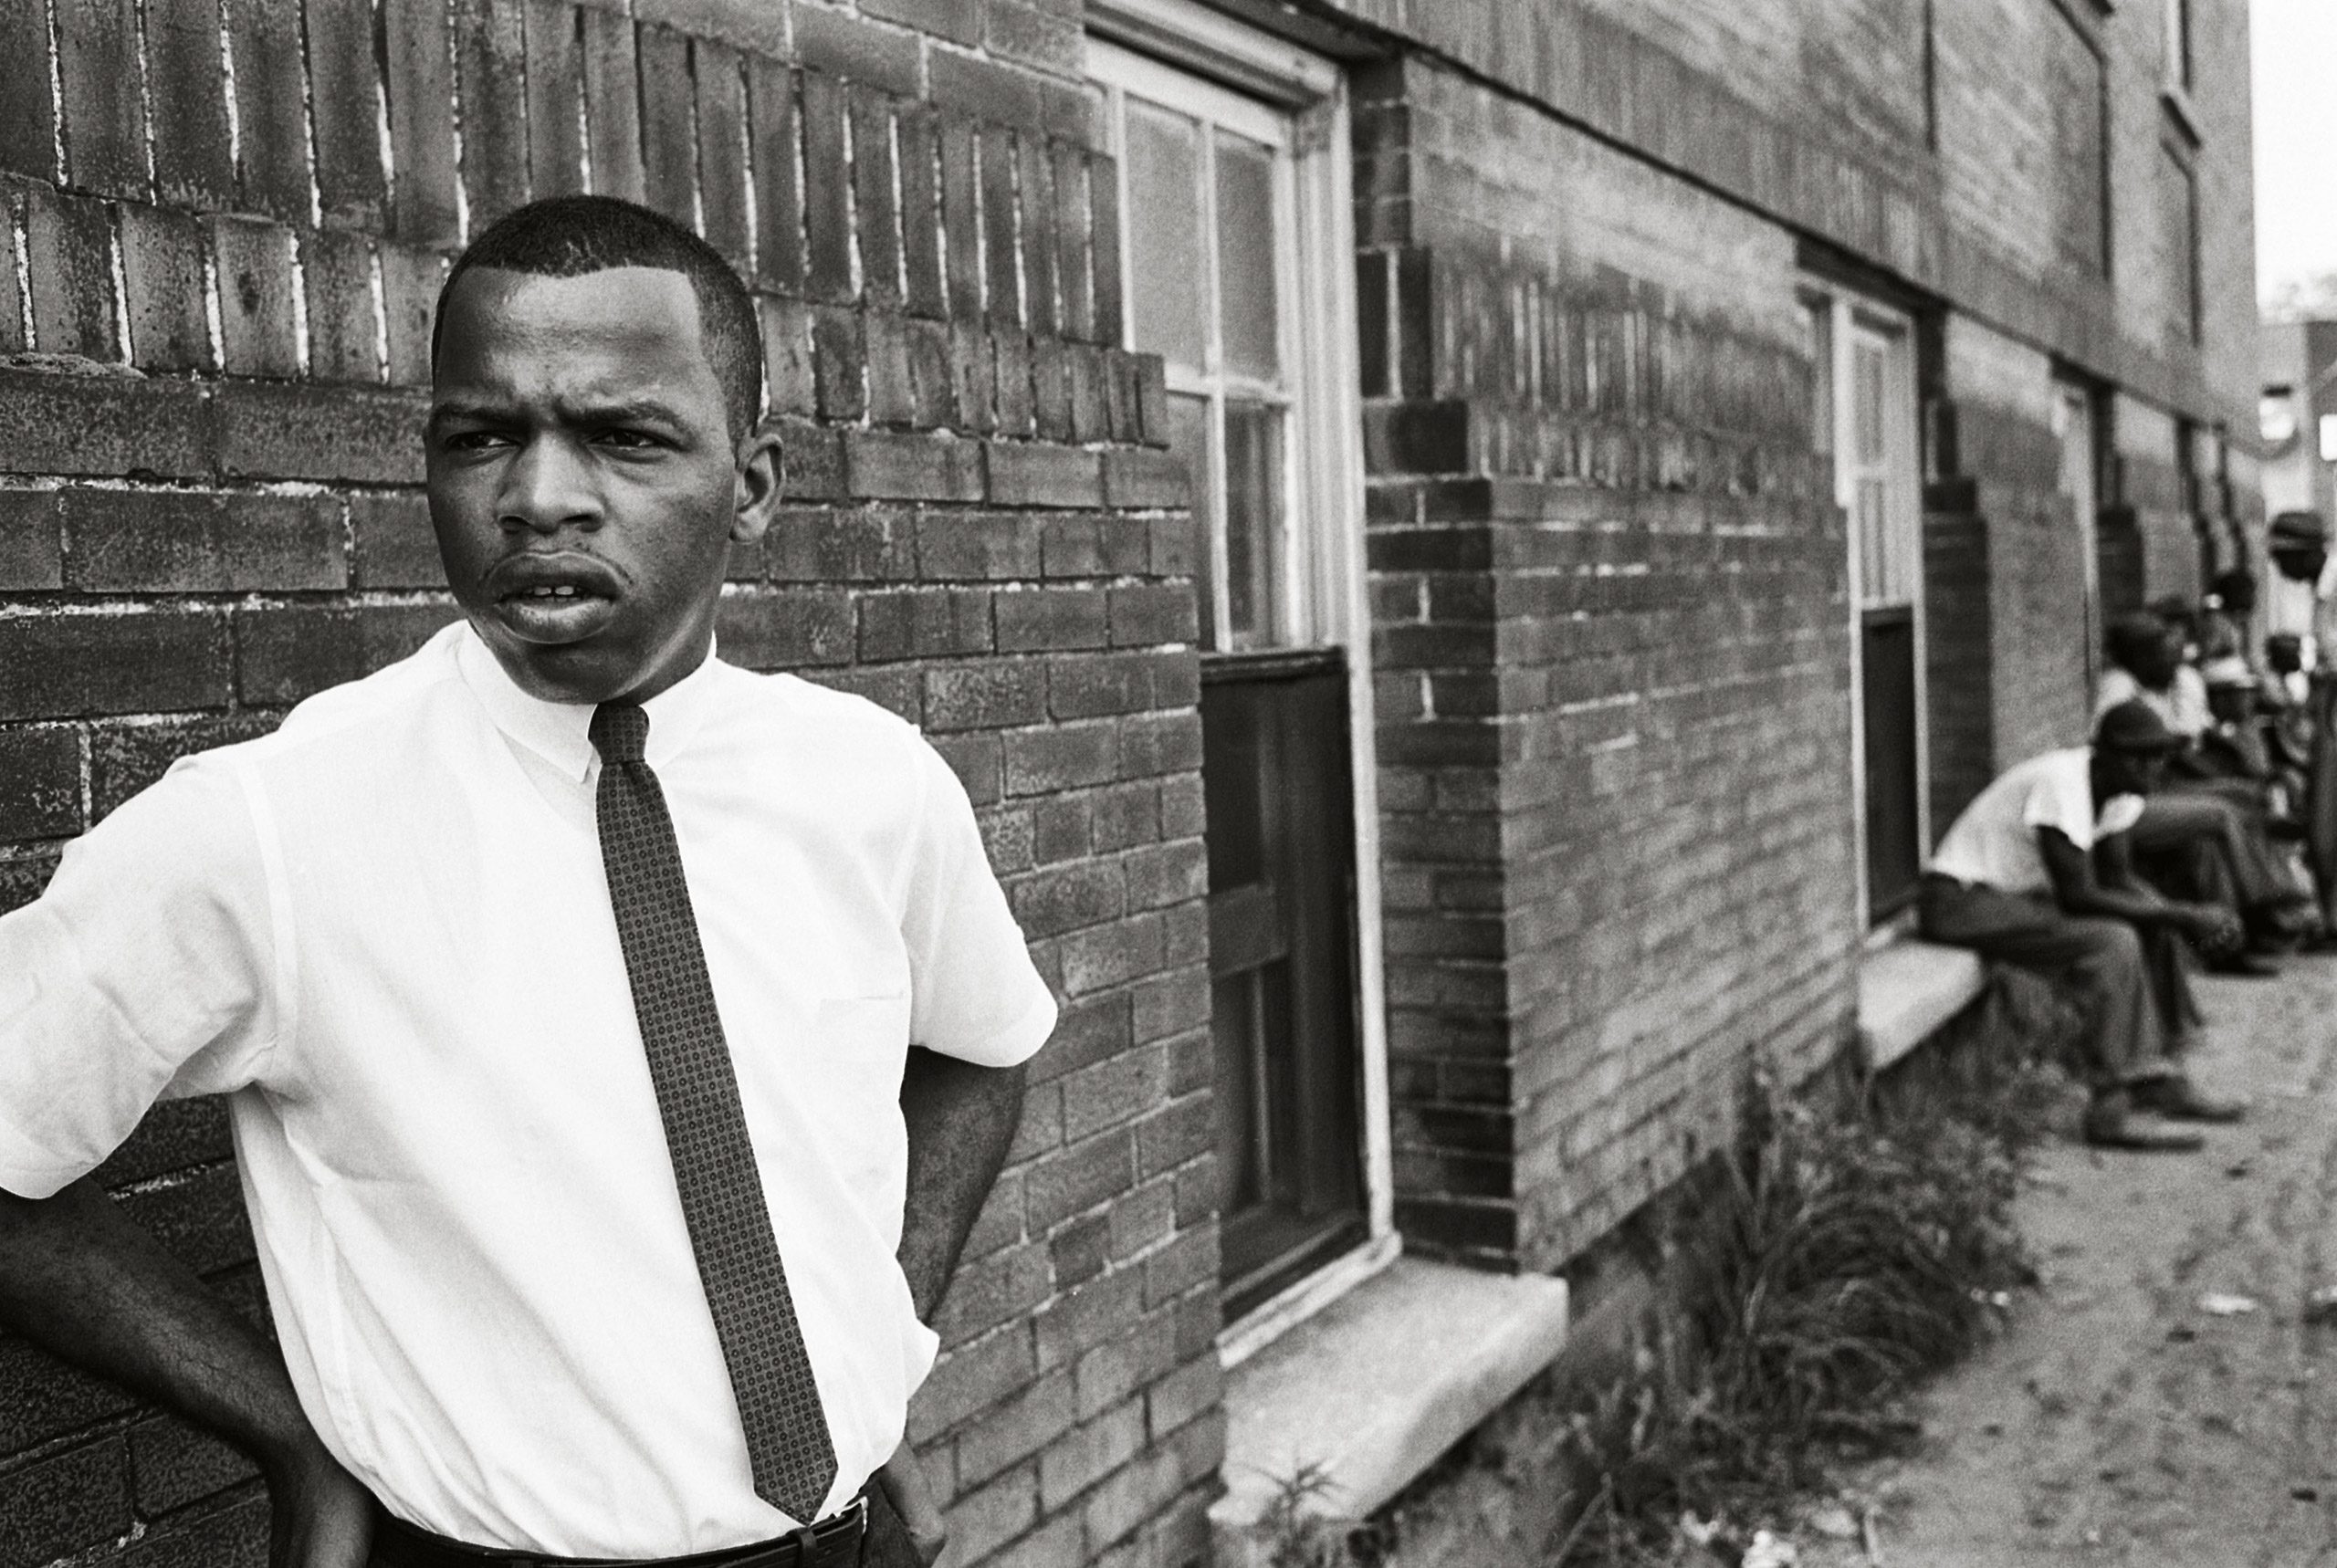 Previously Published.                               United States Representative John Lewis, then chairman of the Student Nonviolent                               Coordinating Committee (SNCC), in Clarksdale, May 1963. Congressman                               Lewis has written an original introduction                               to this edition of The Fire Next Time.